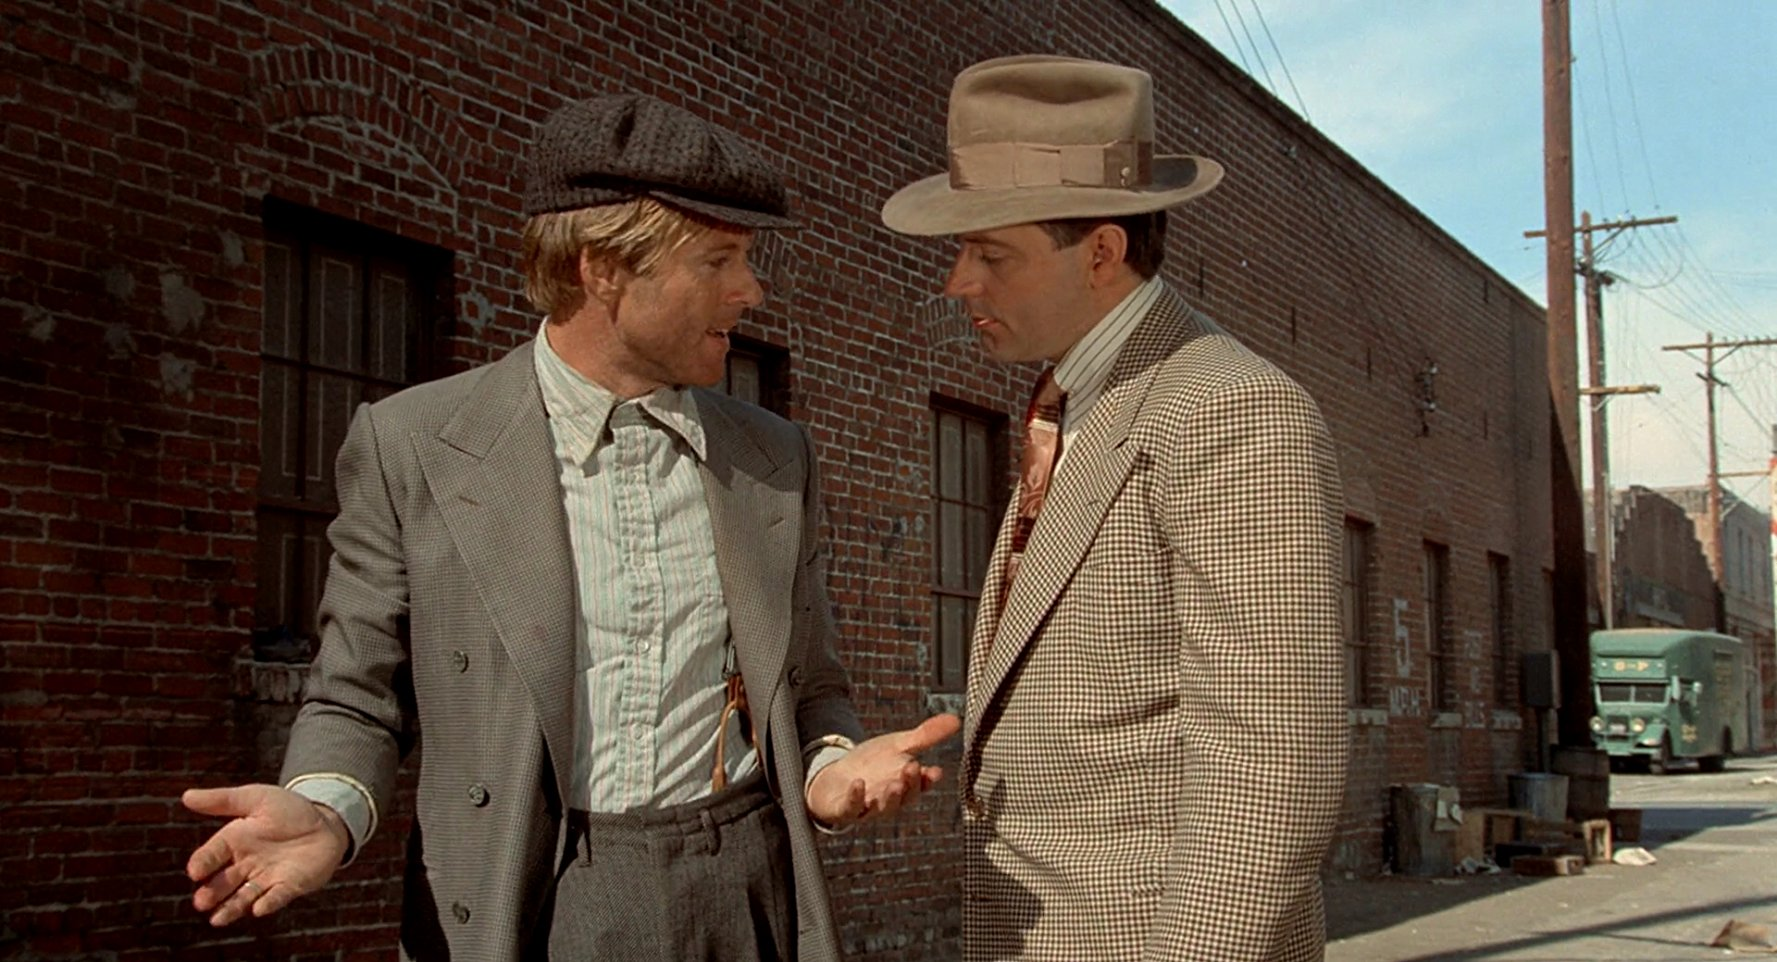 Robert Redford and James Sloyan in The Sting (1973)